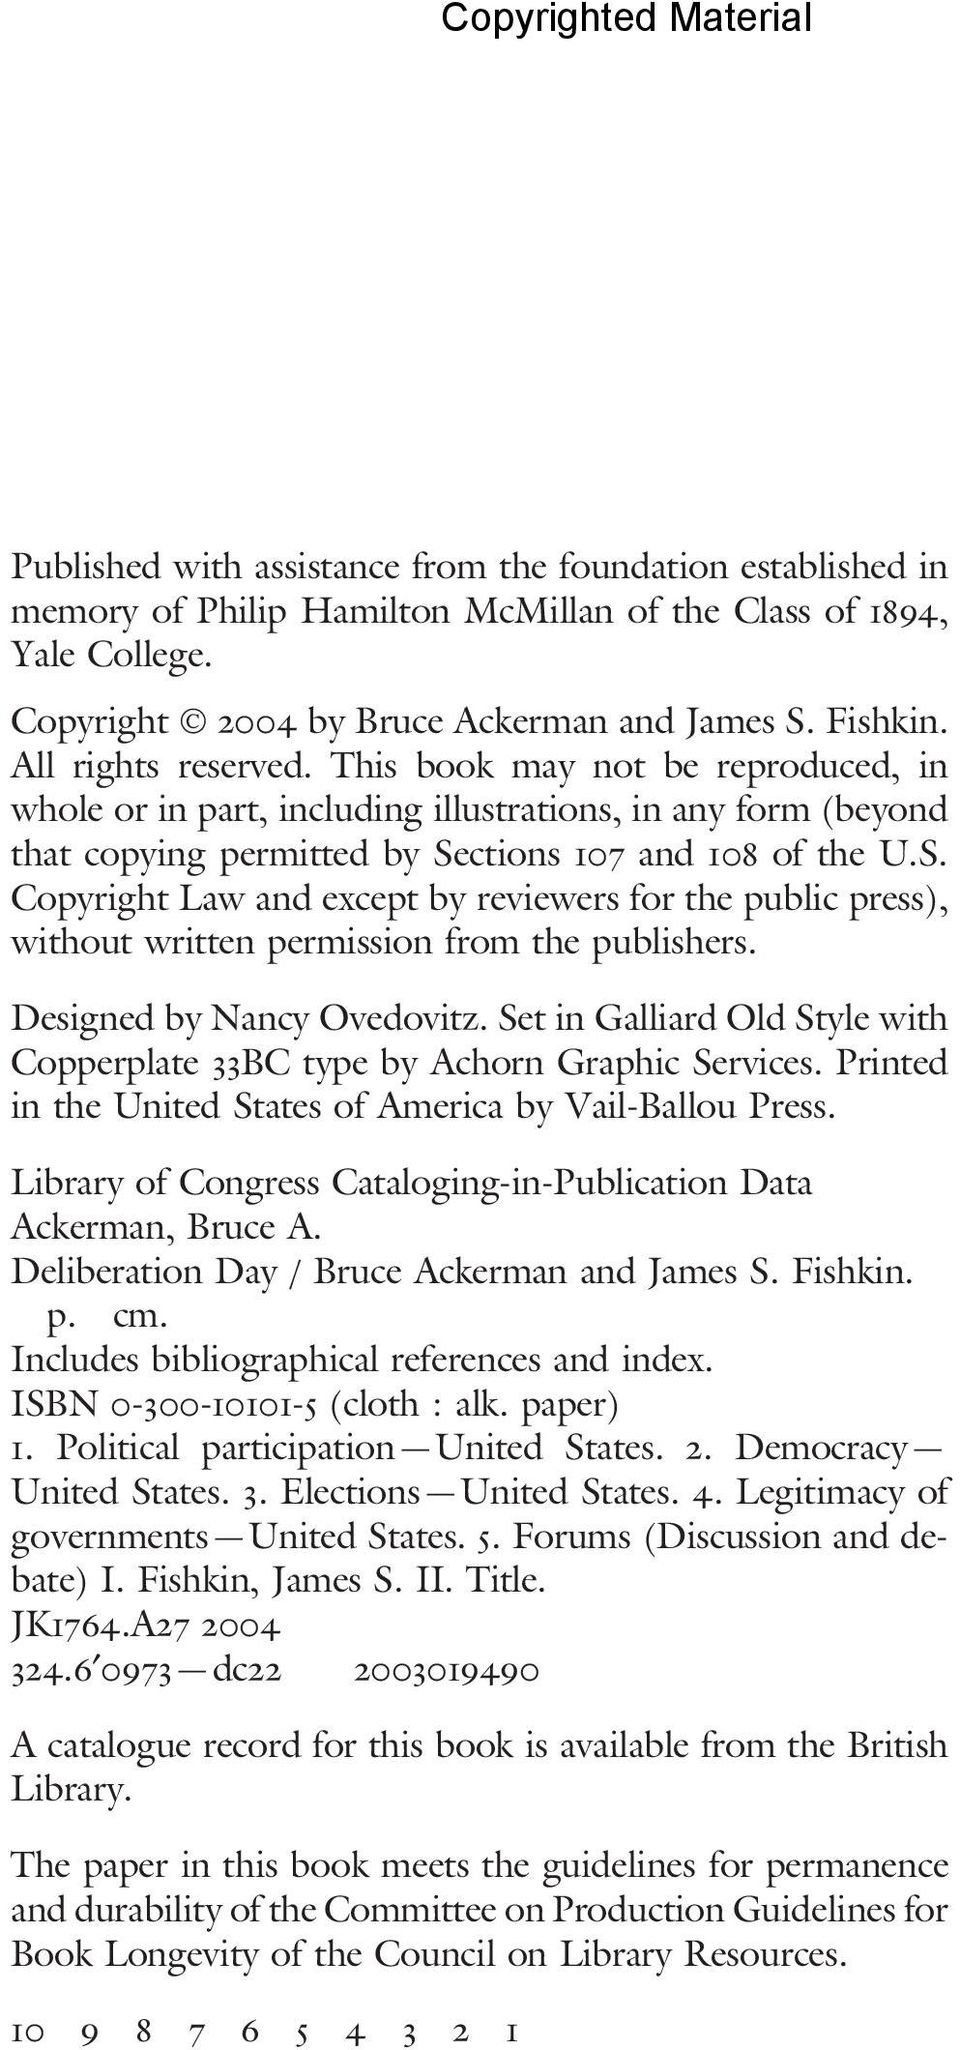 ctions 107 and 108 of the U.S. Copyright Law and except by reviewers for the public press), without written permission from the publishers. Designed by Nancy Ovedovitz.